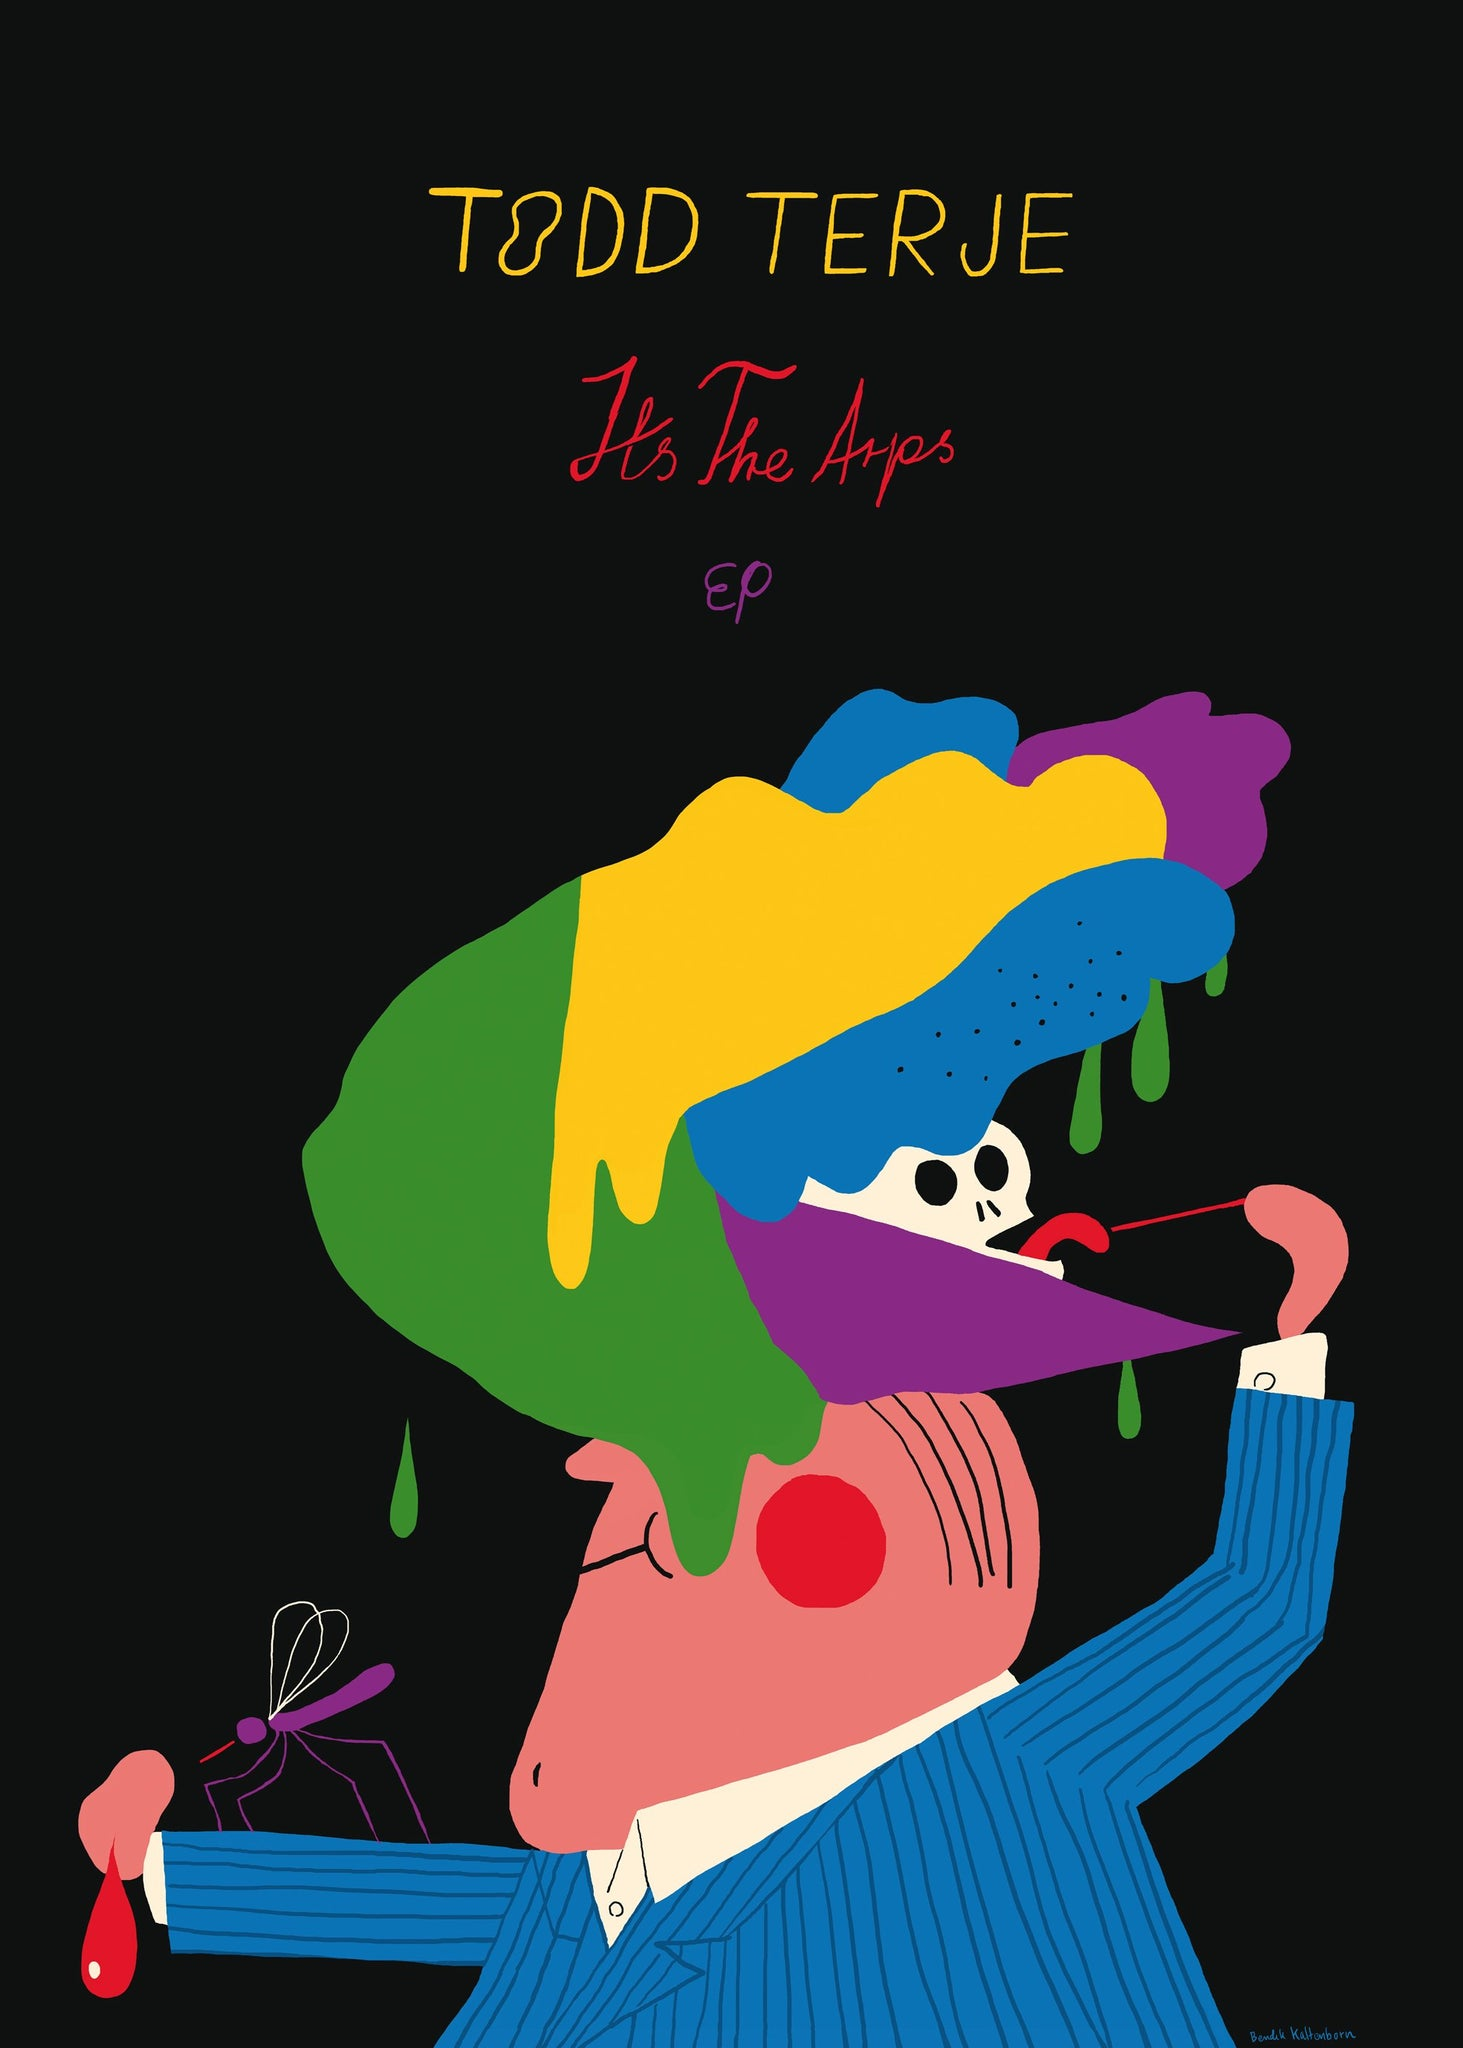 Bendik Kaltenborn: Todd Terje, Its The Arps. Signed Poster